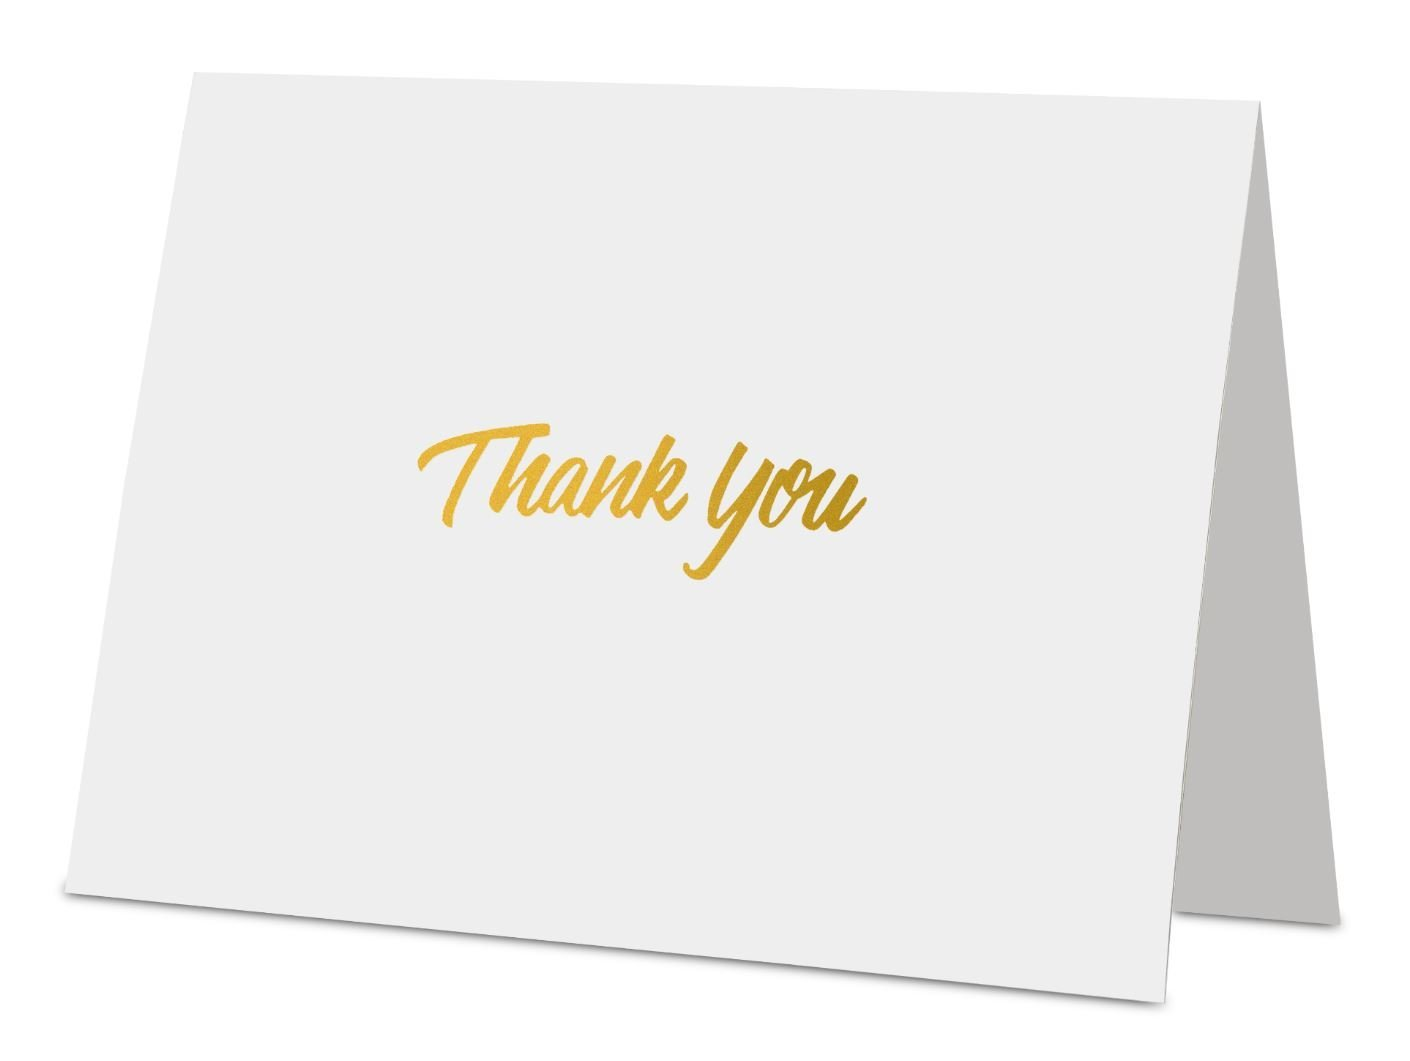 Designer Envelope Thank You Cards With Envelopes - Thank You Cards Wholesale For Weddings, Birthdays